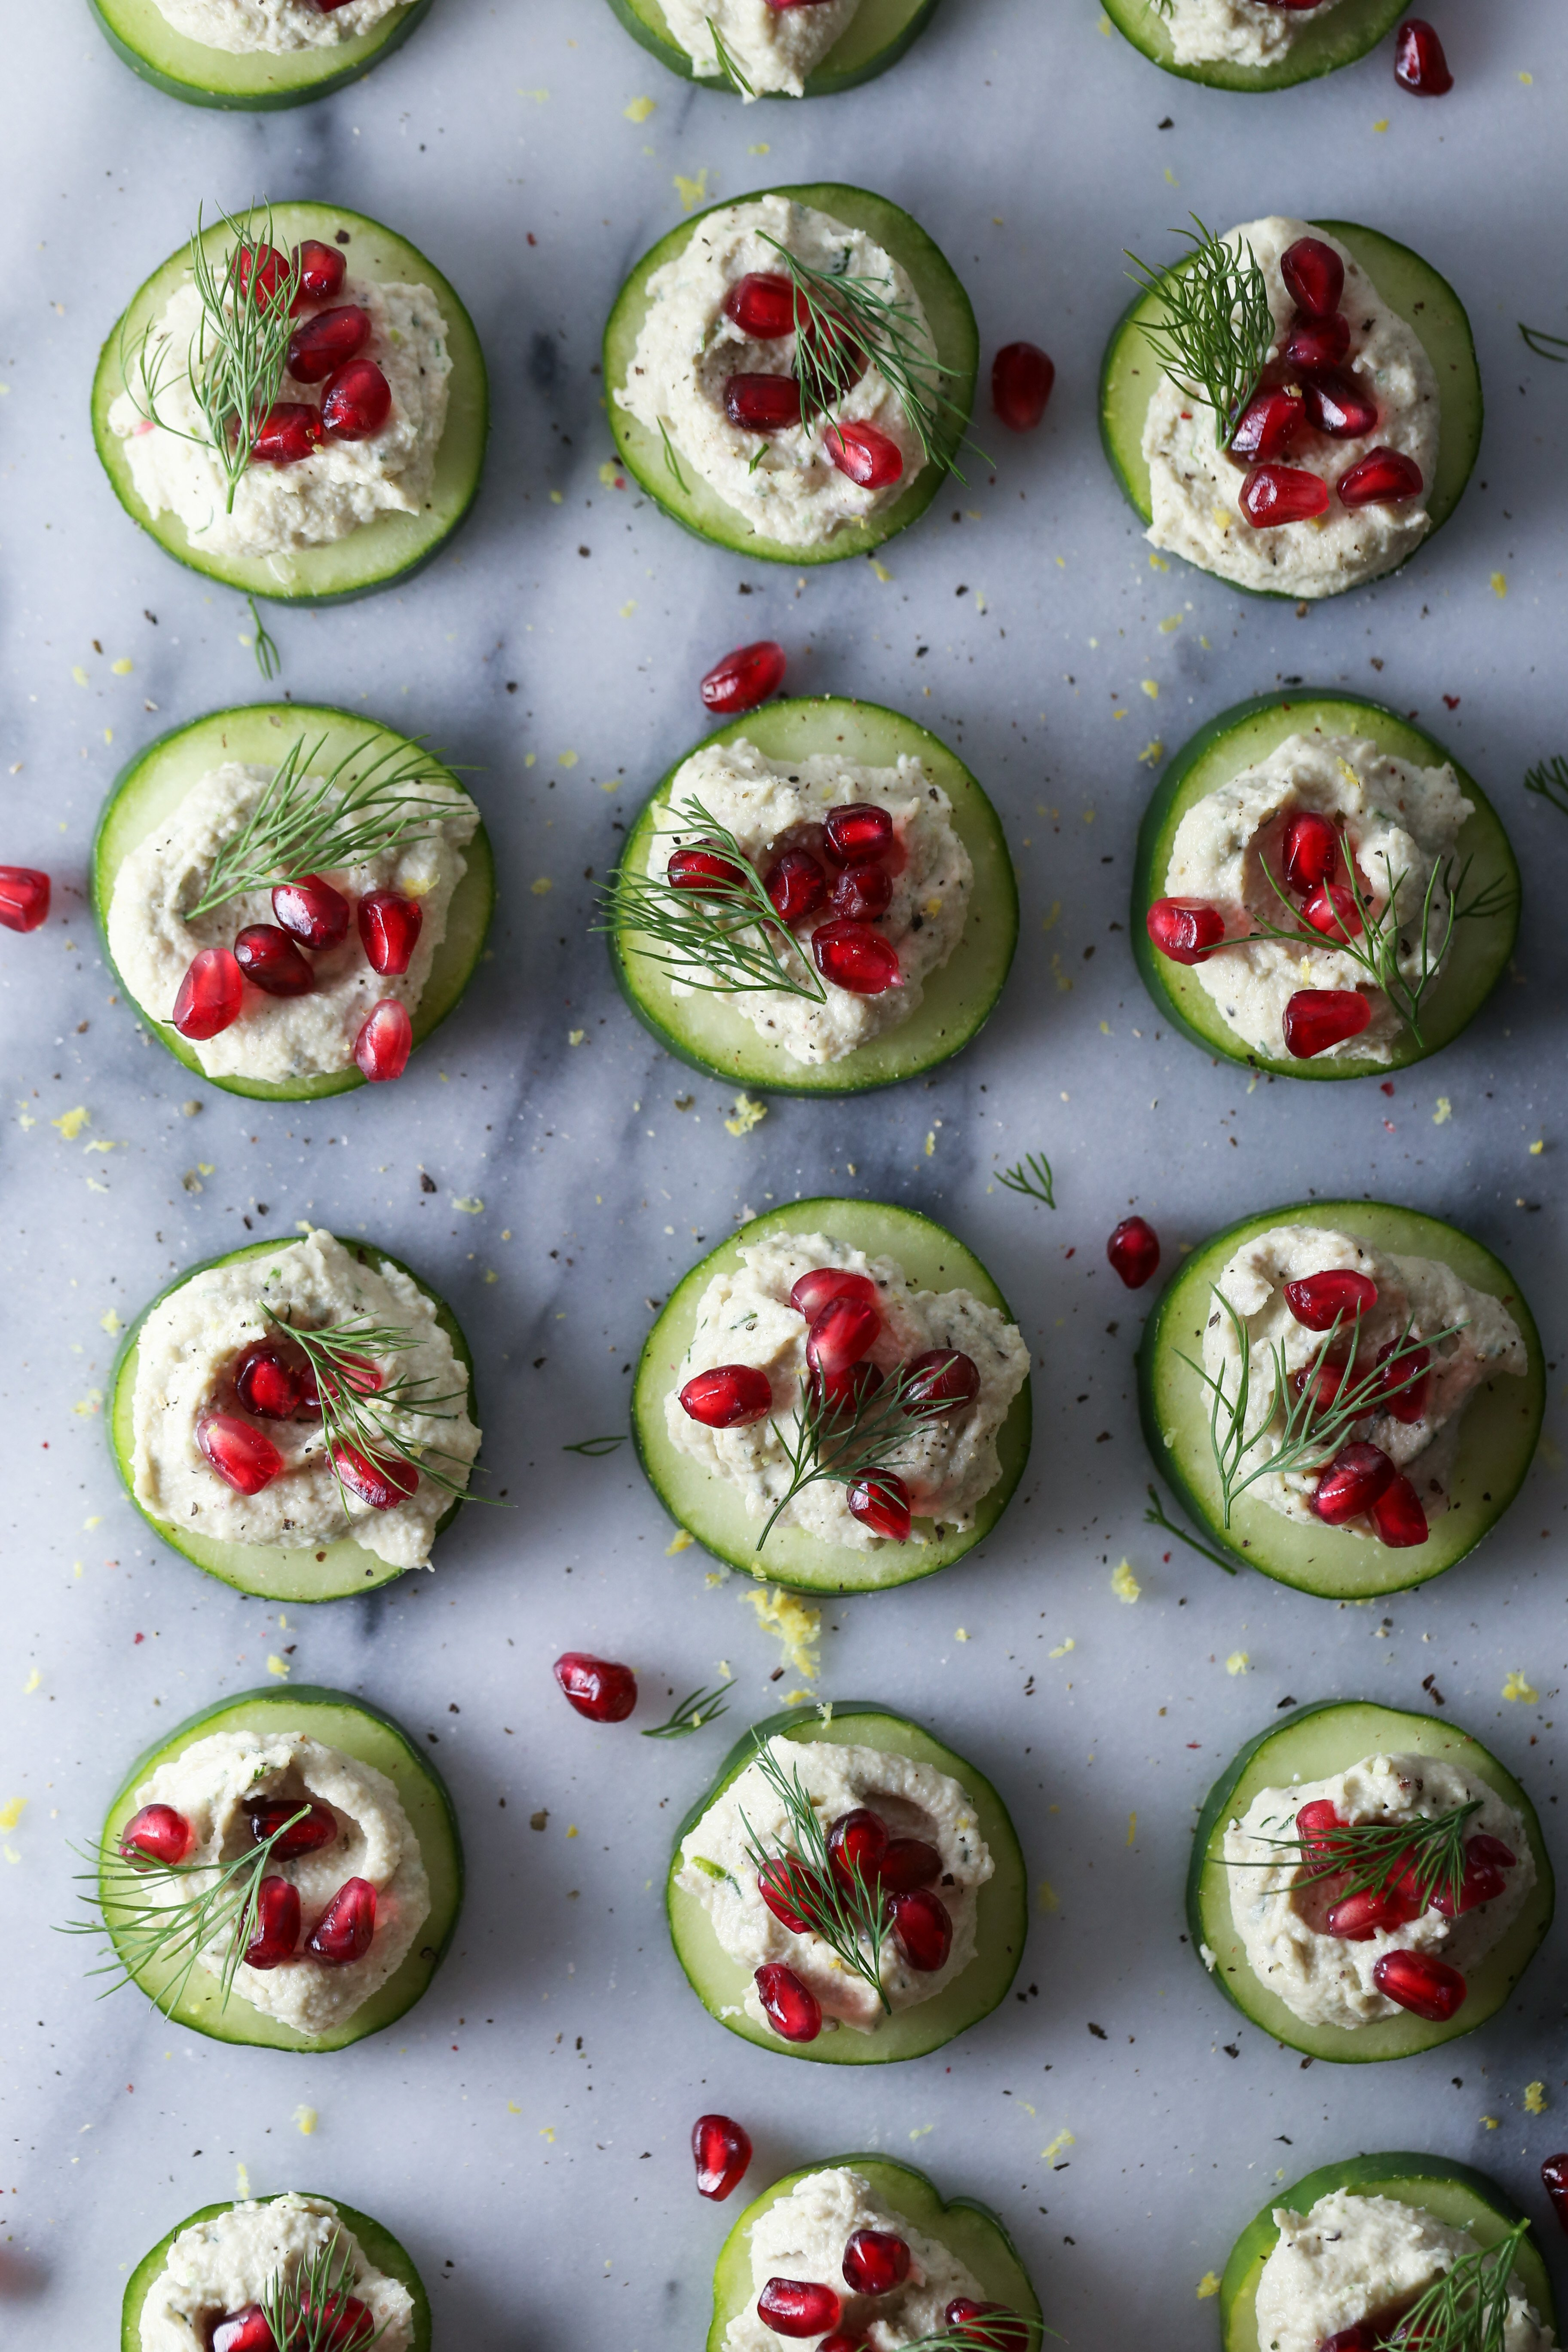 Herb Cashew Cheese and Pomegranate Cucumber Bites | Grain, gluten, & dairy free. Paleo/Whole 30 & vegan friendly.